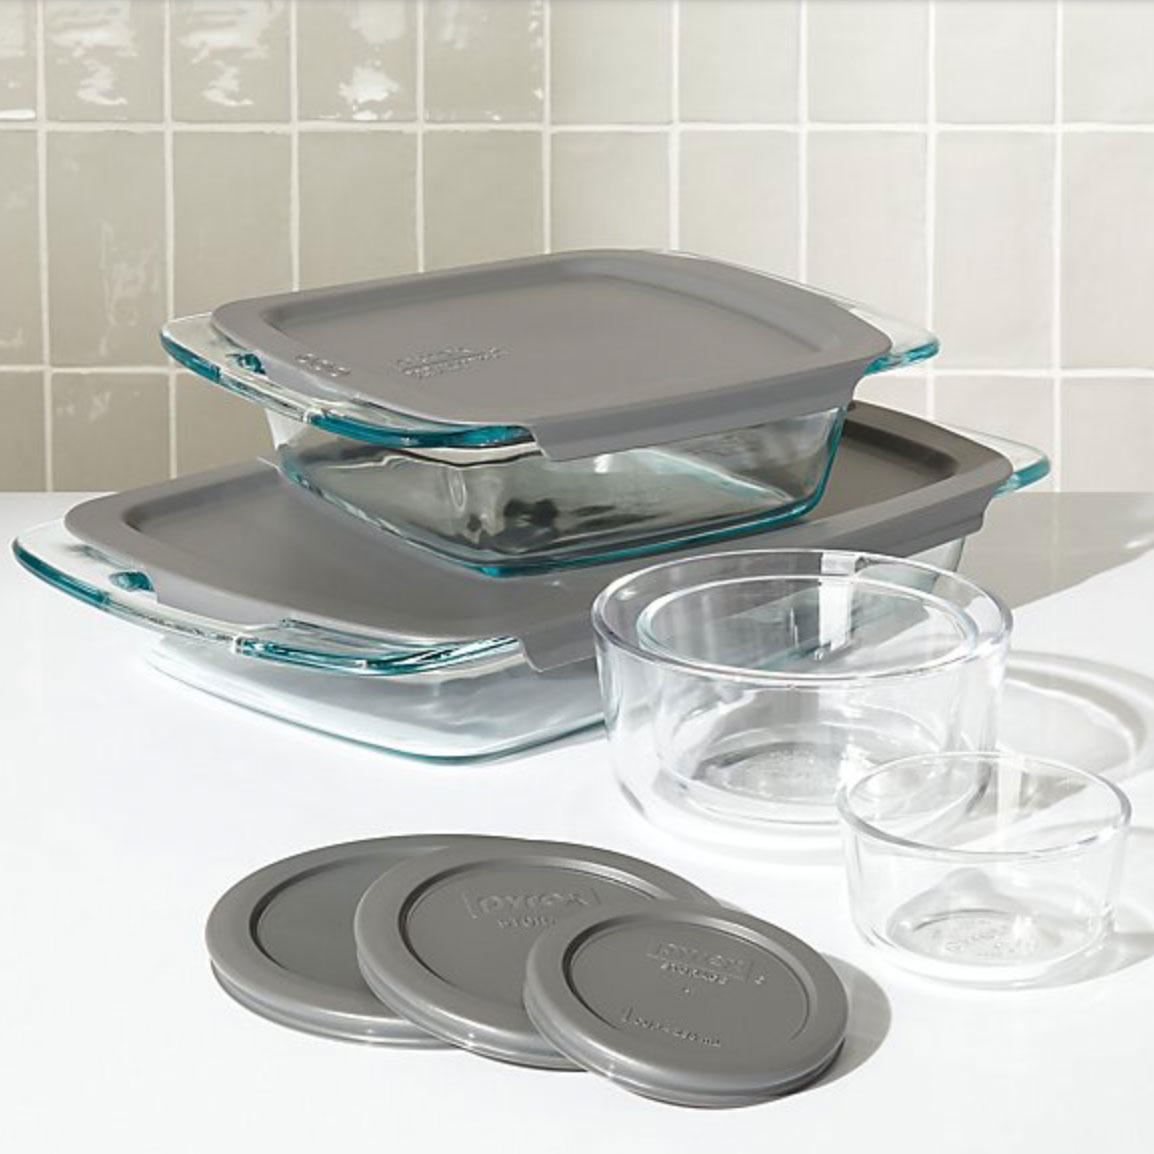 Pyrex glass containers and baking dishes